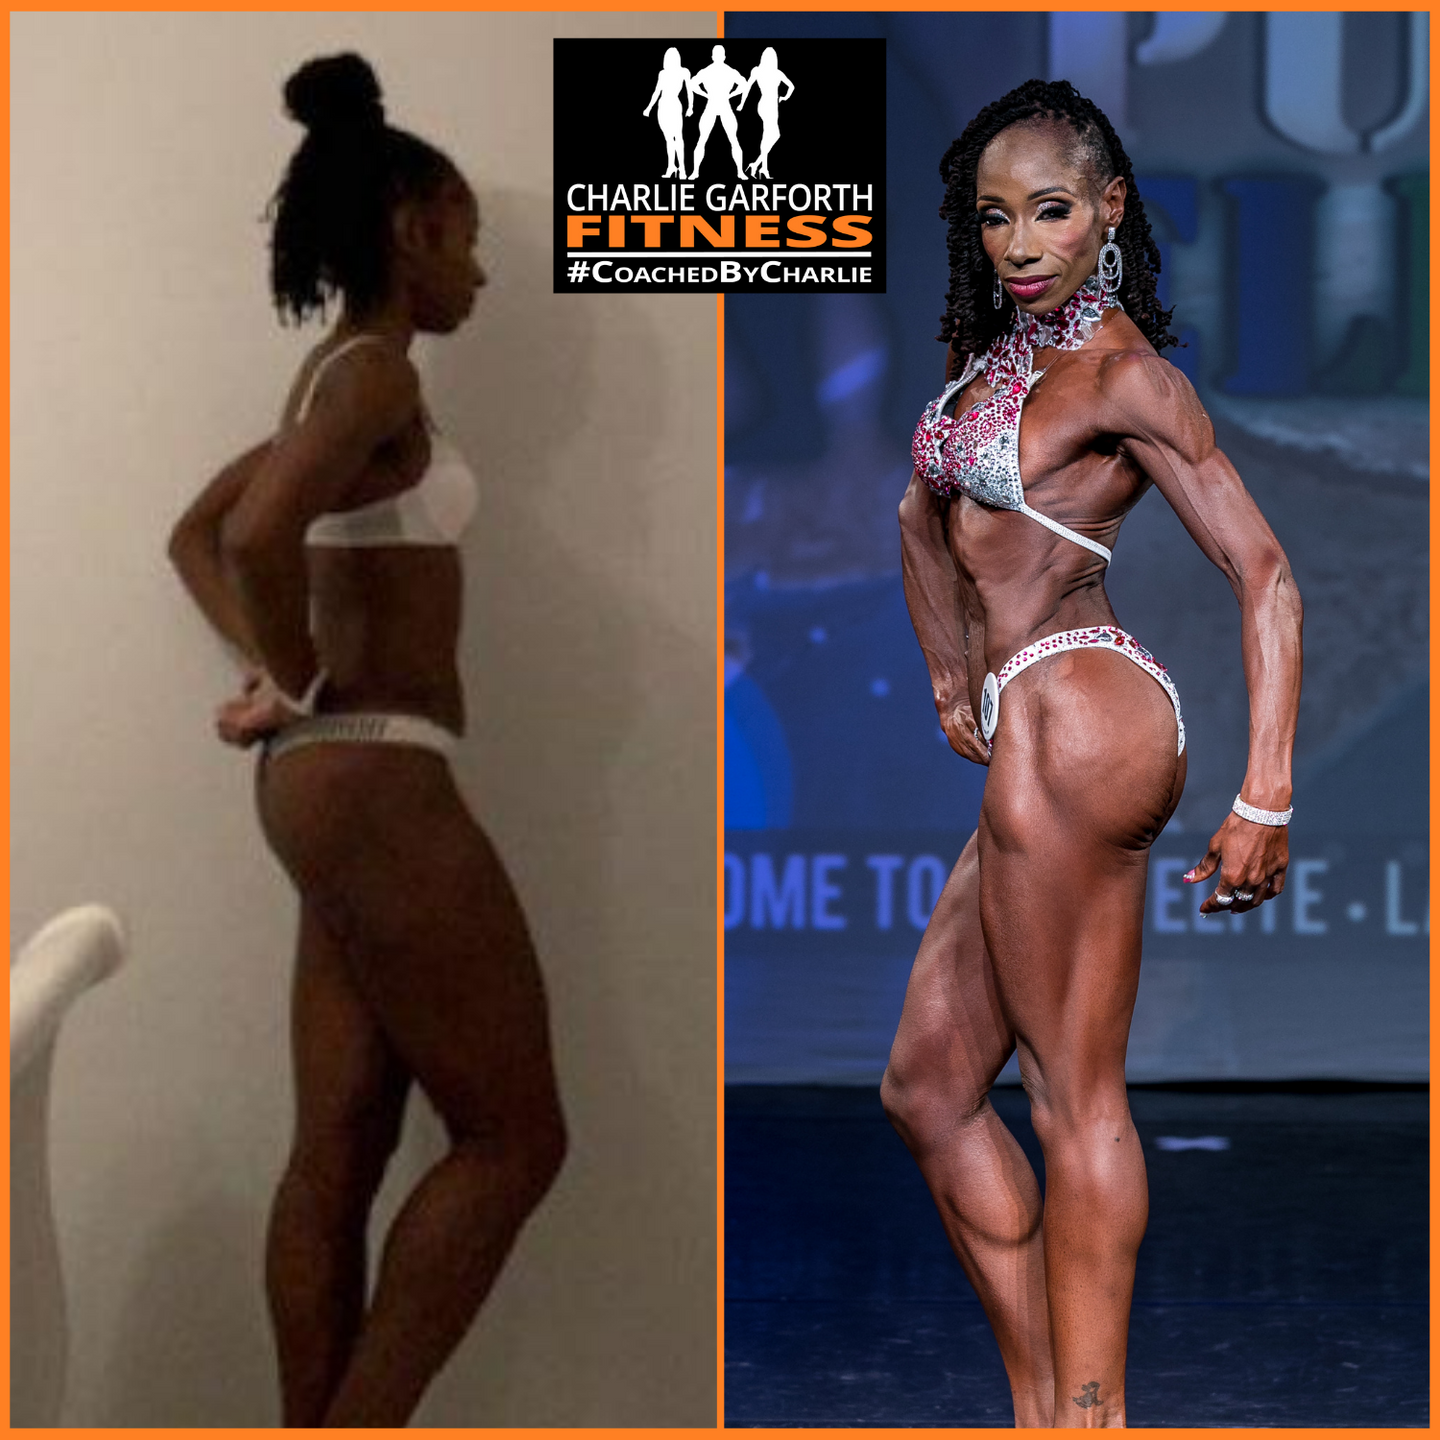 Female fitness model pro competition prep transformation